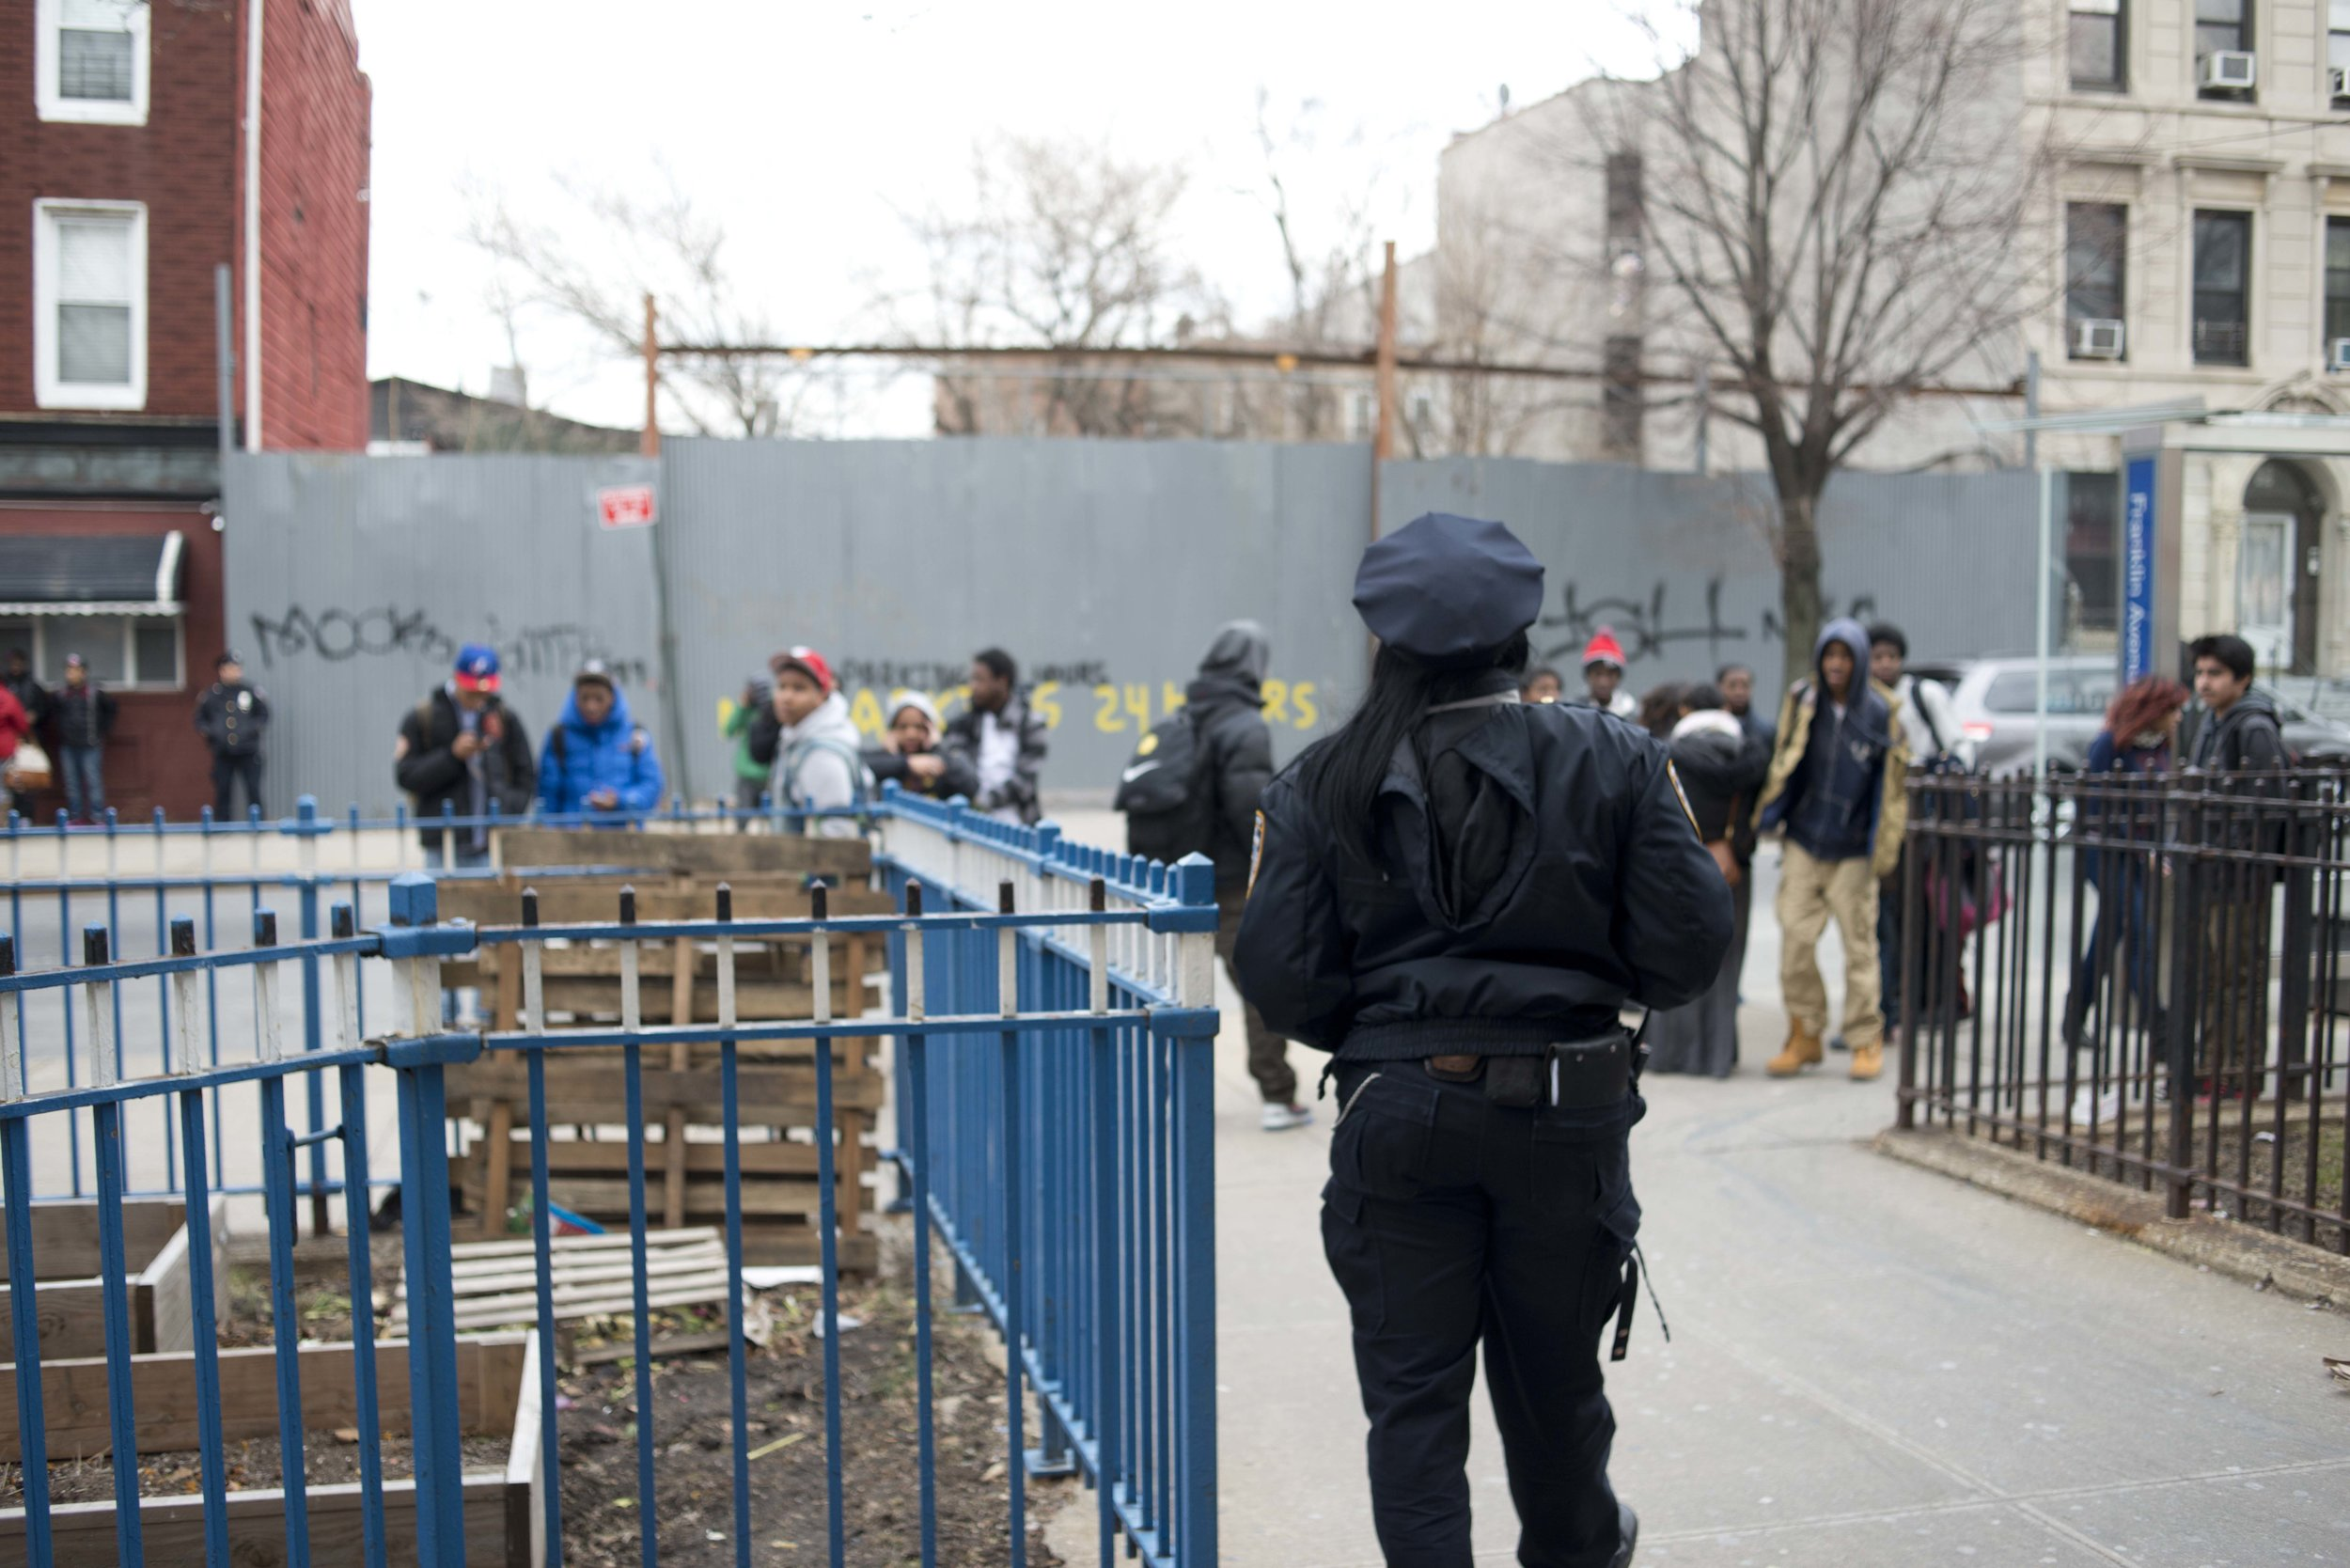 A police officer stands watch after school is dismissed.